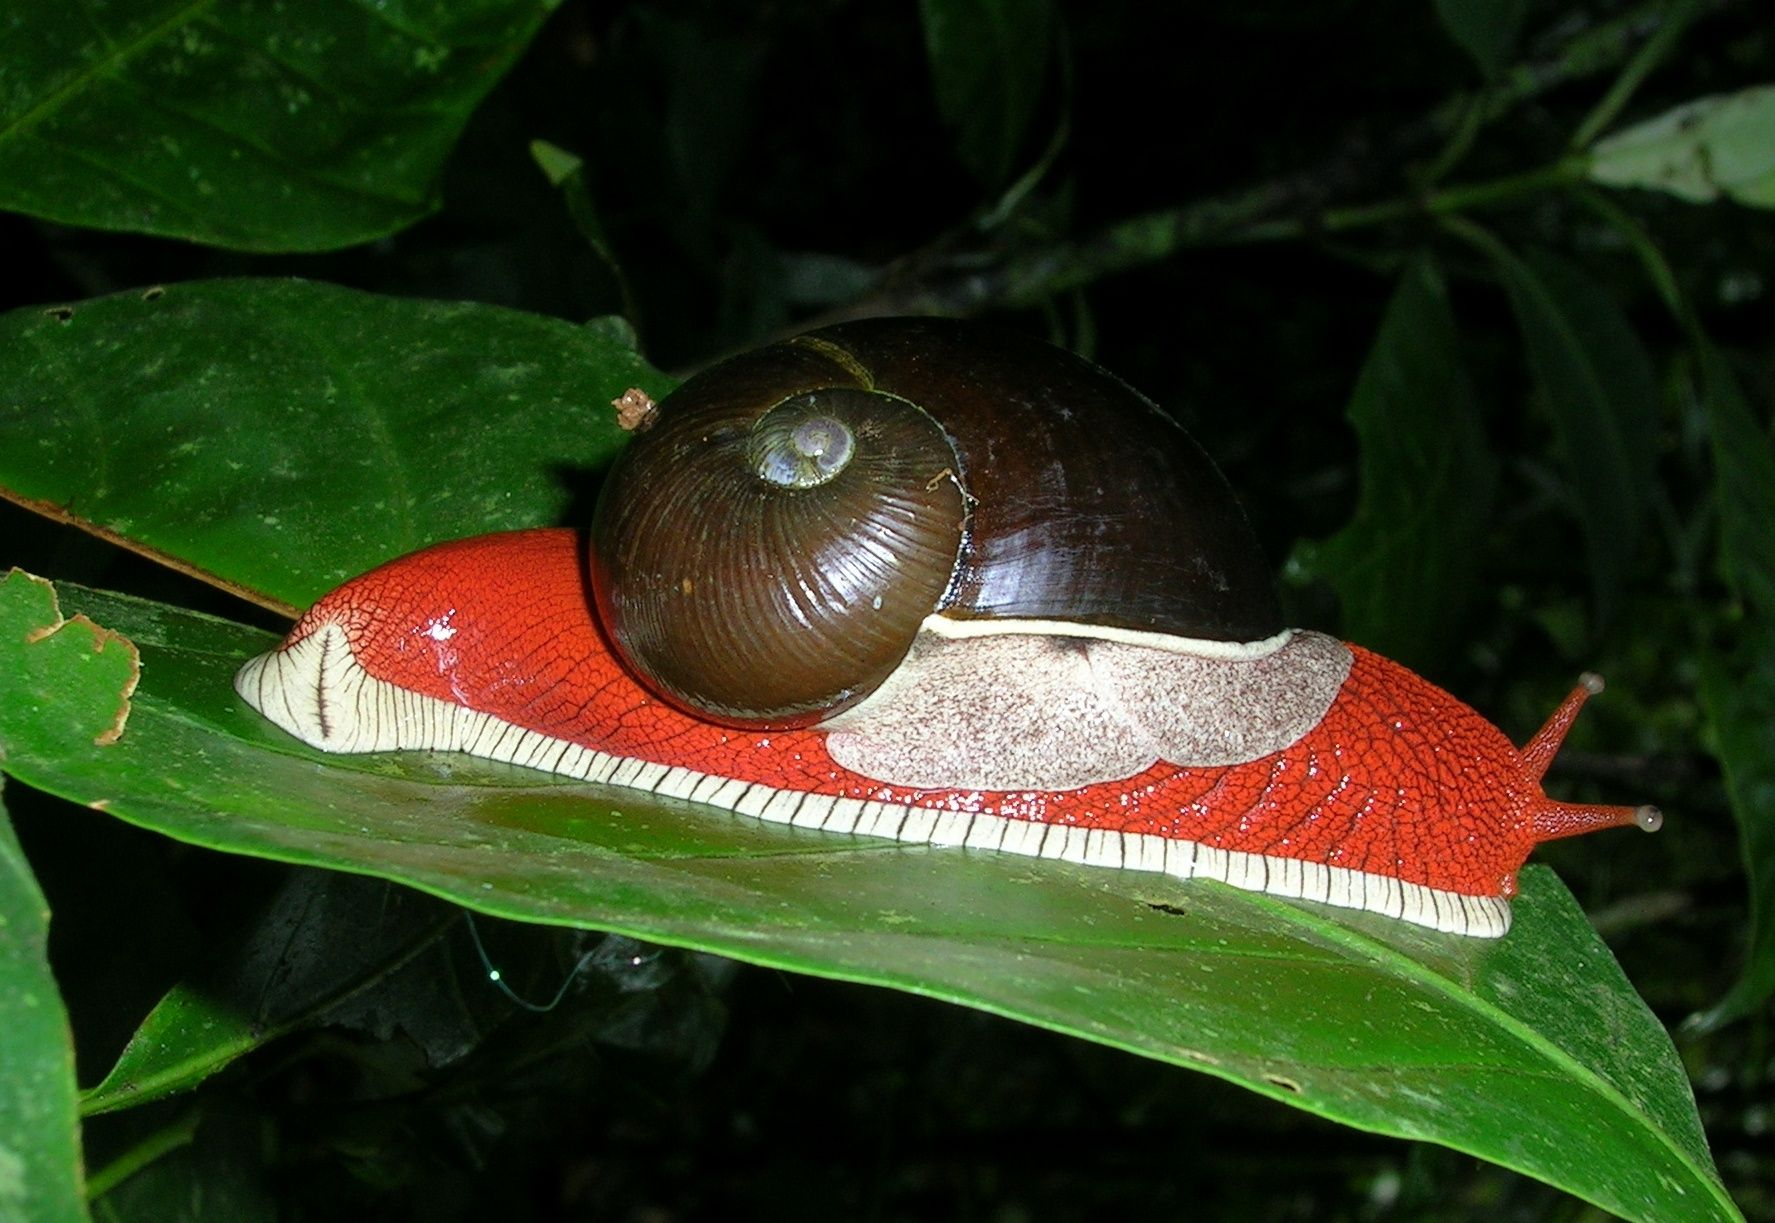 The mantle of the land snail Indrella ampulla is offwhite